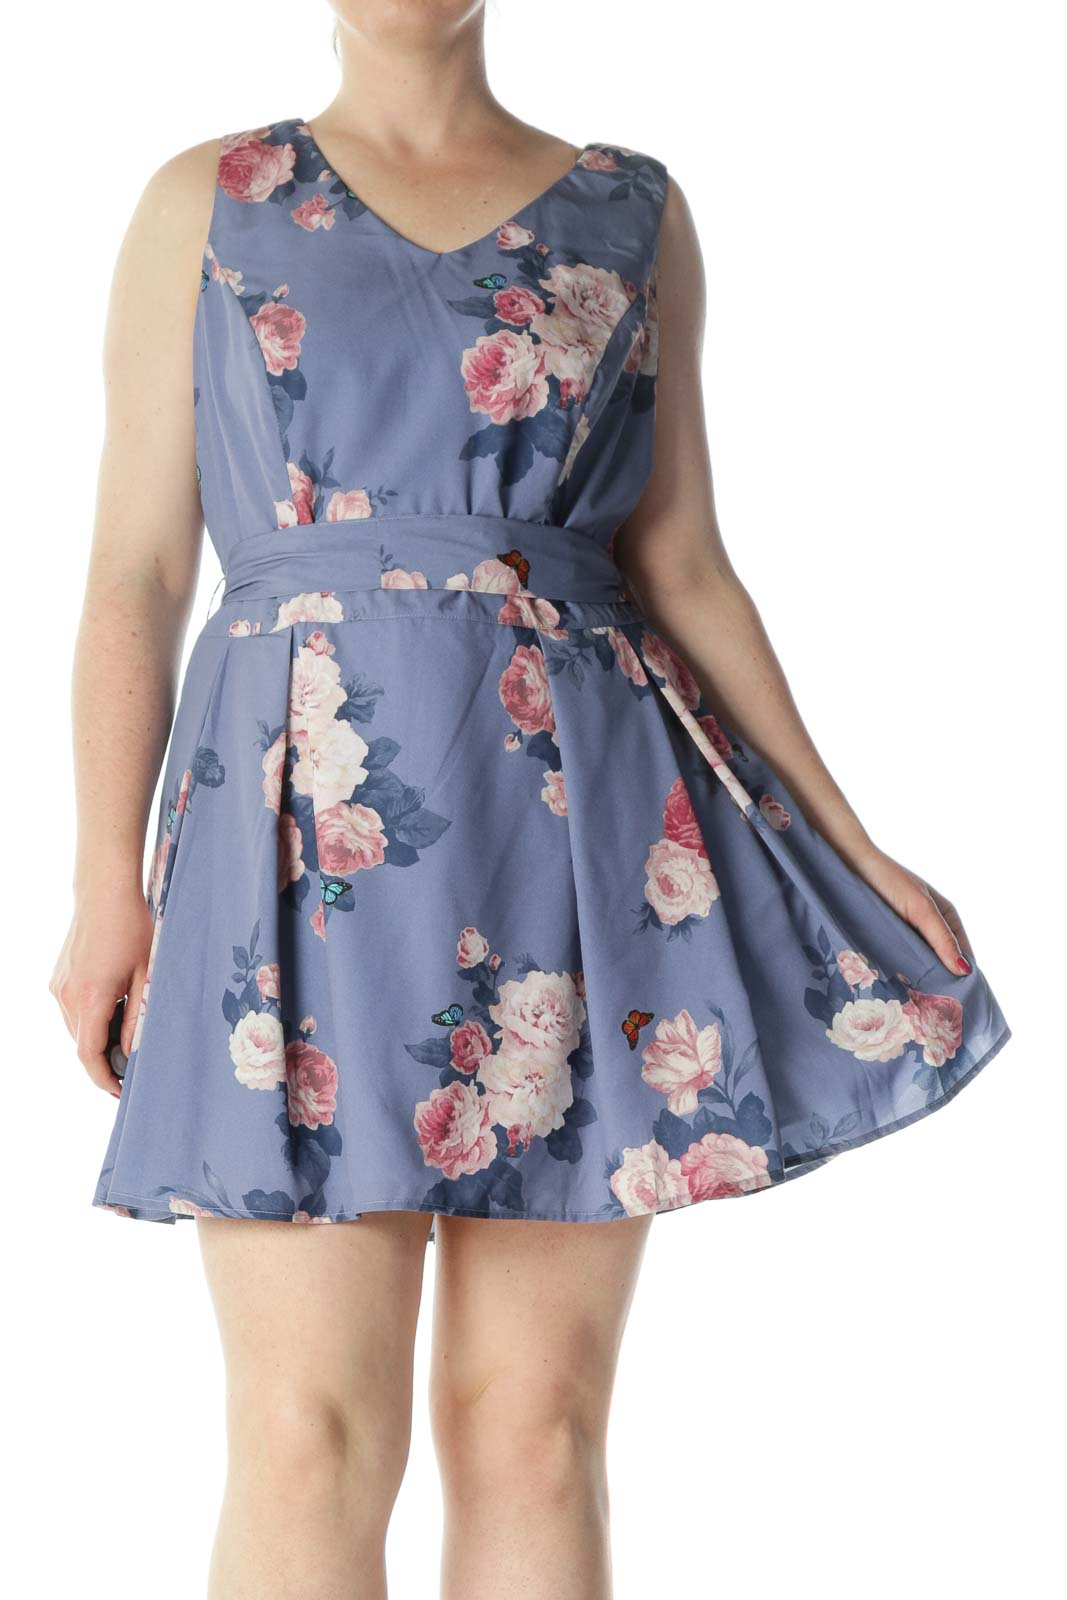 Purple & Pink Floral Sleeveless V-Neck Flared Day-Dress Front